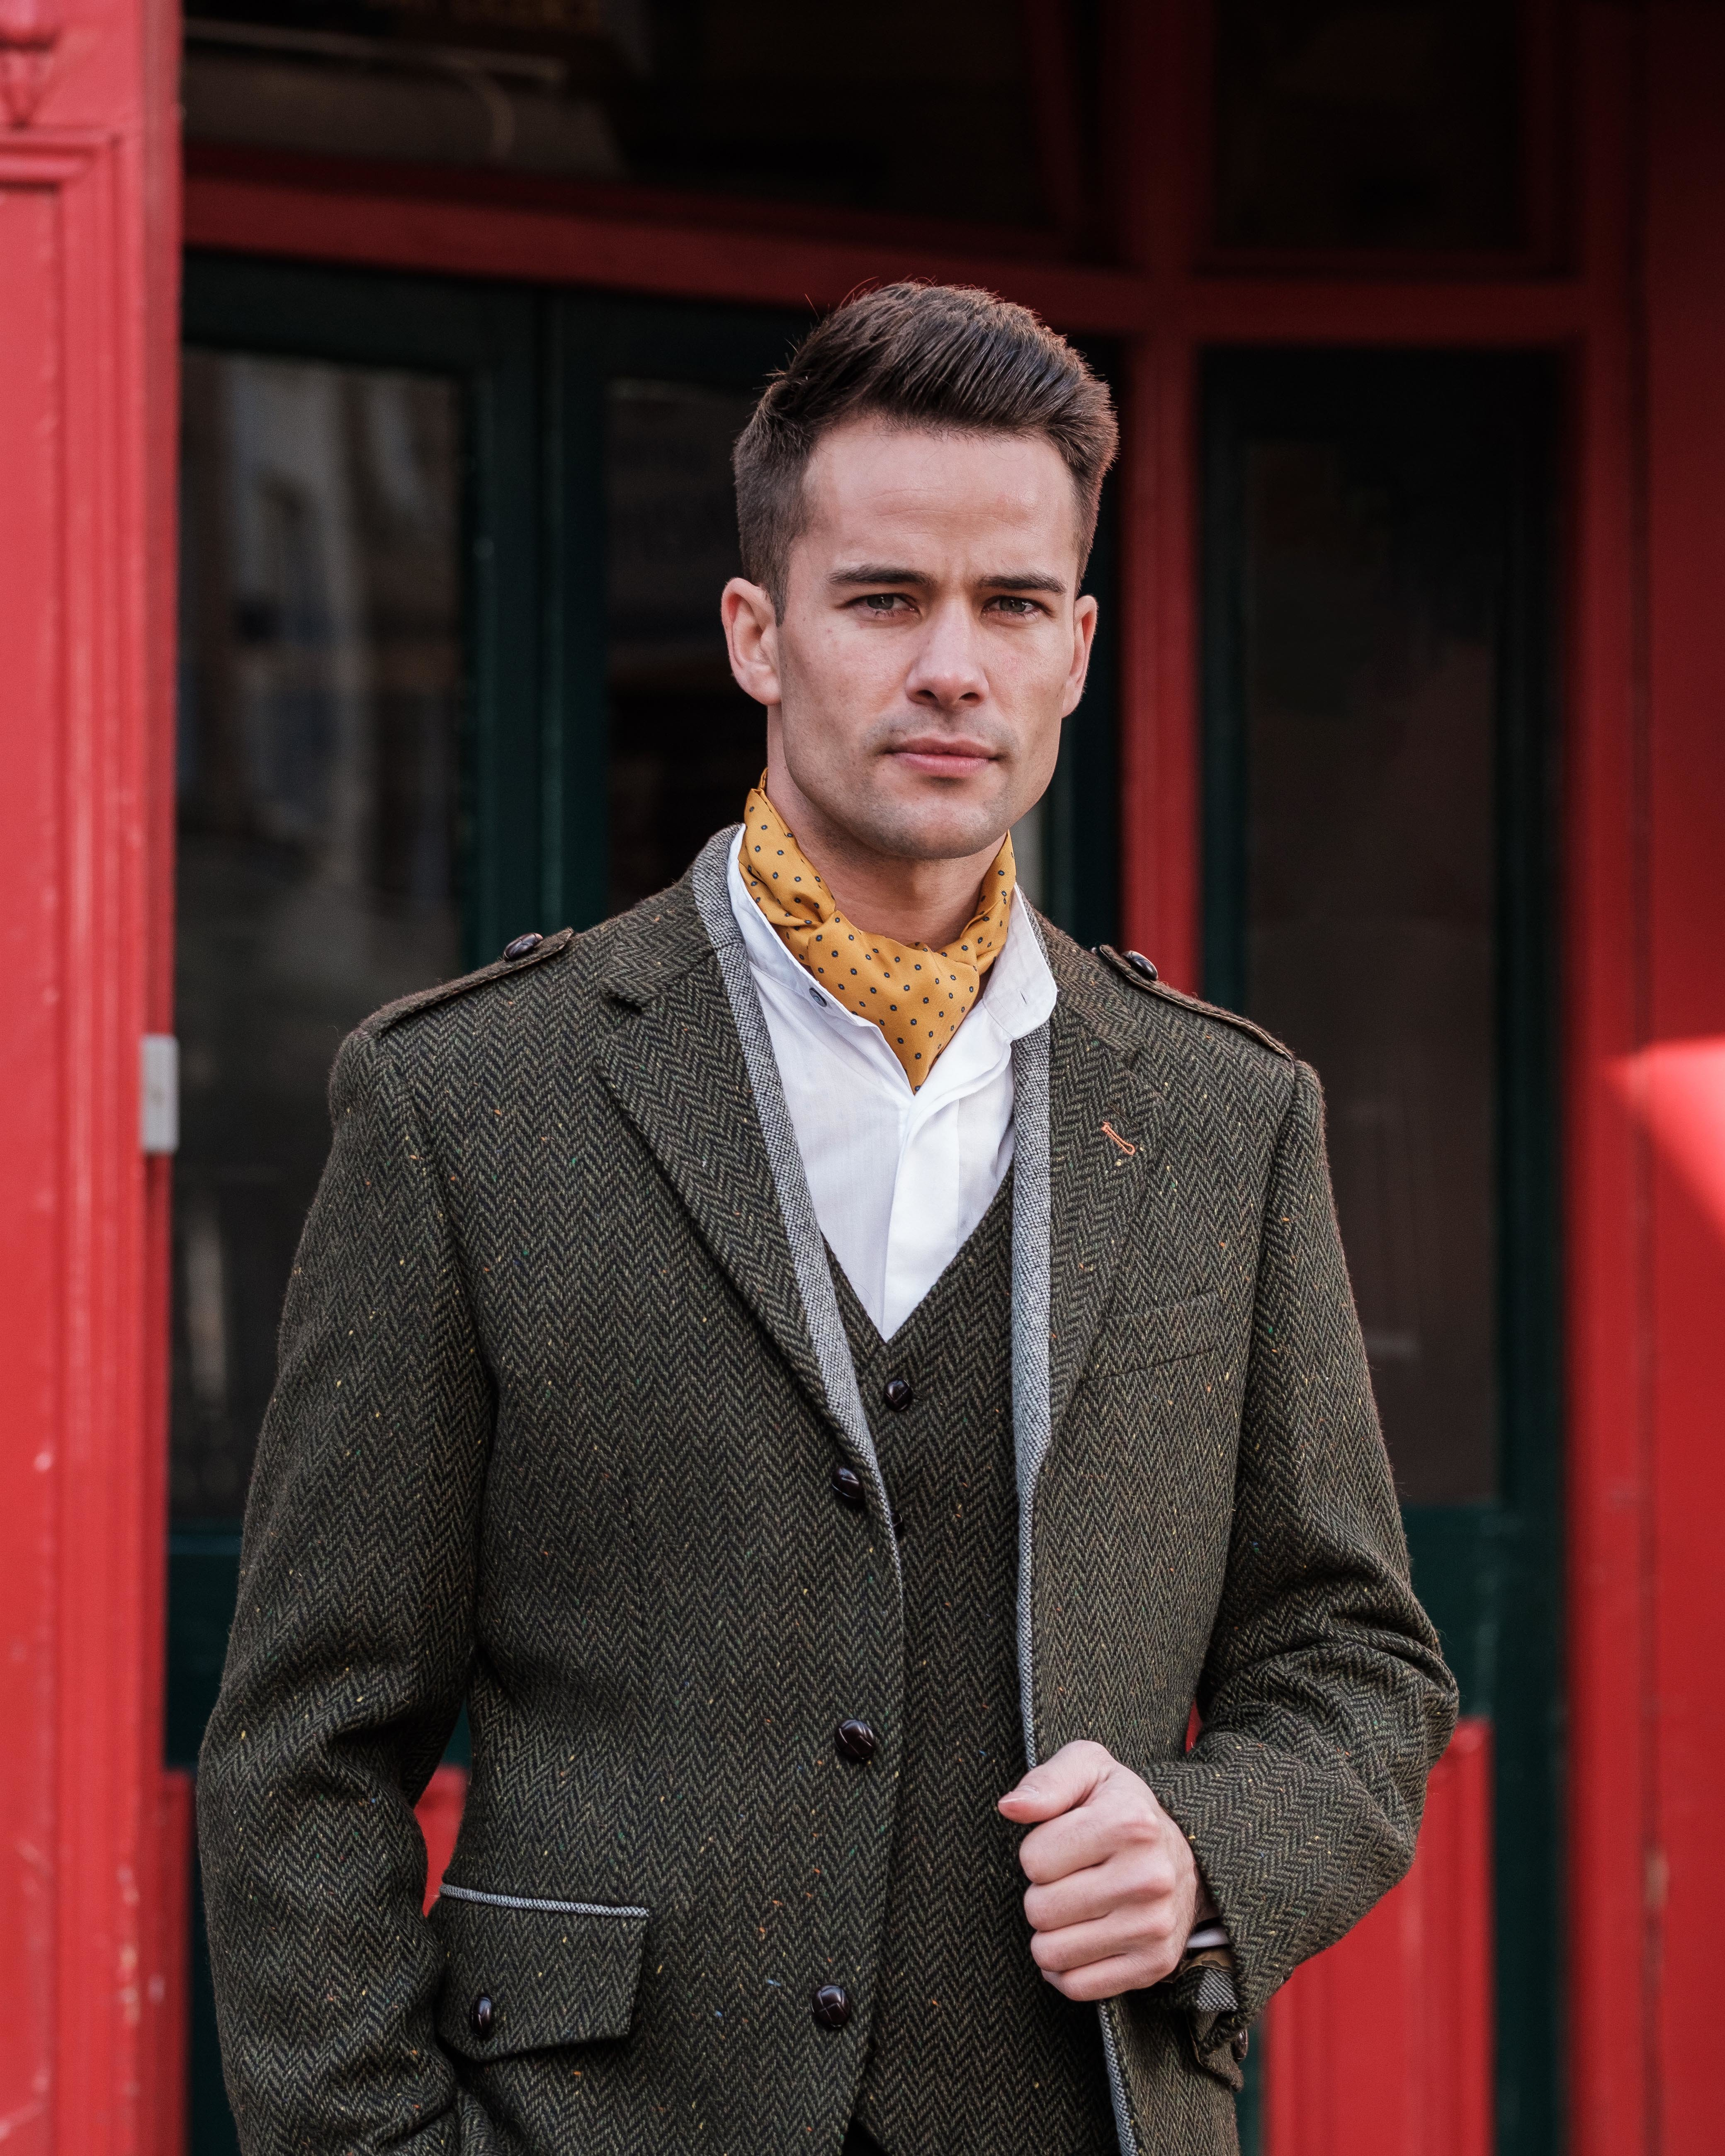 Pearse Green Herringbone Tweed Jacket Heritage Styling